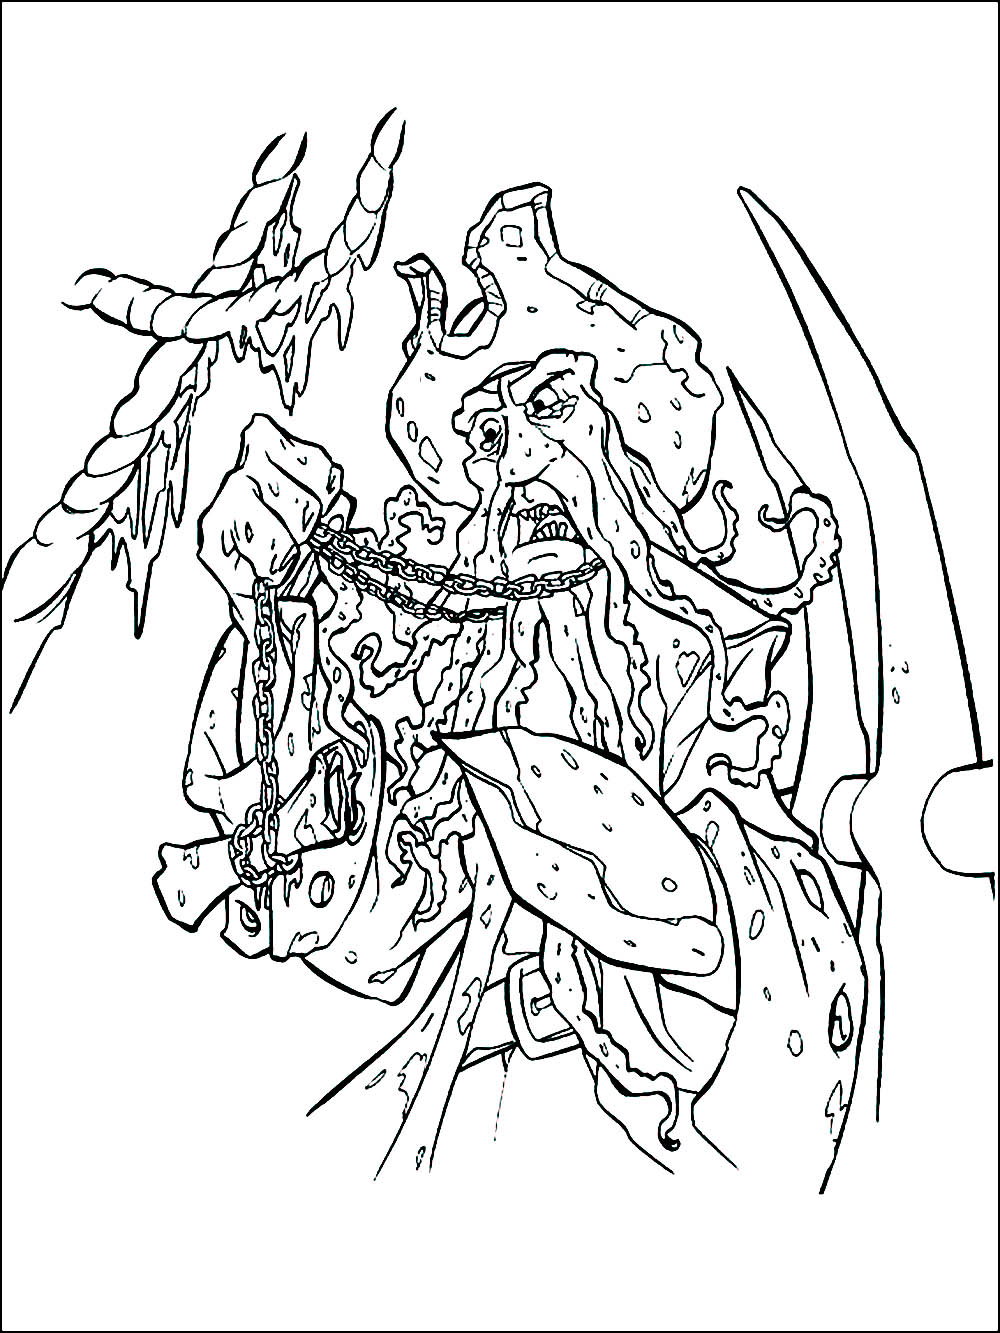 Easy free Pirates of the Caribbean coloring page to download